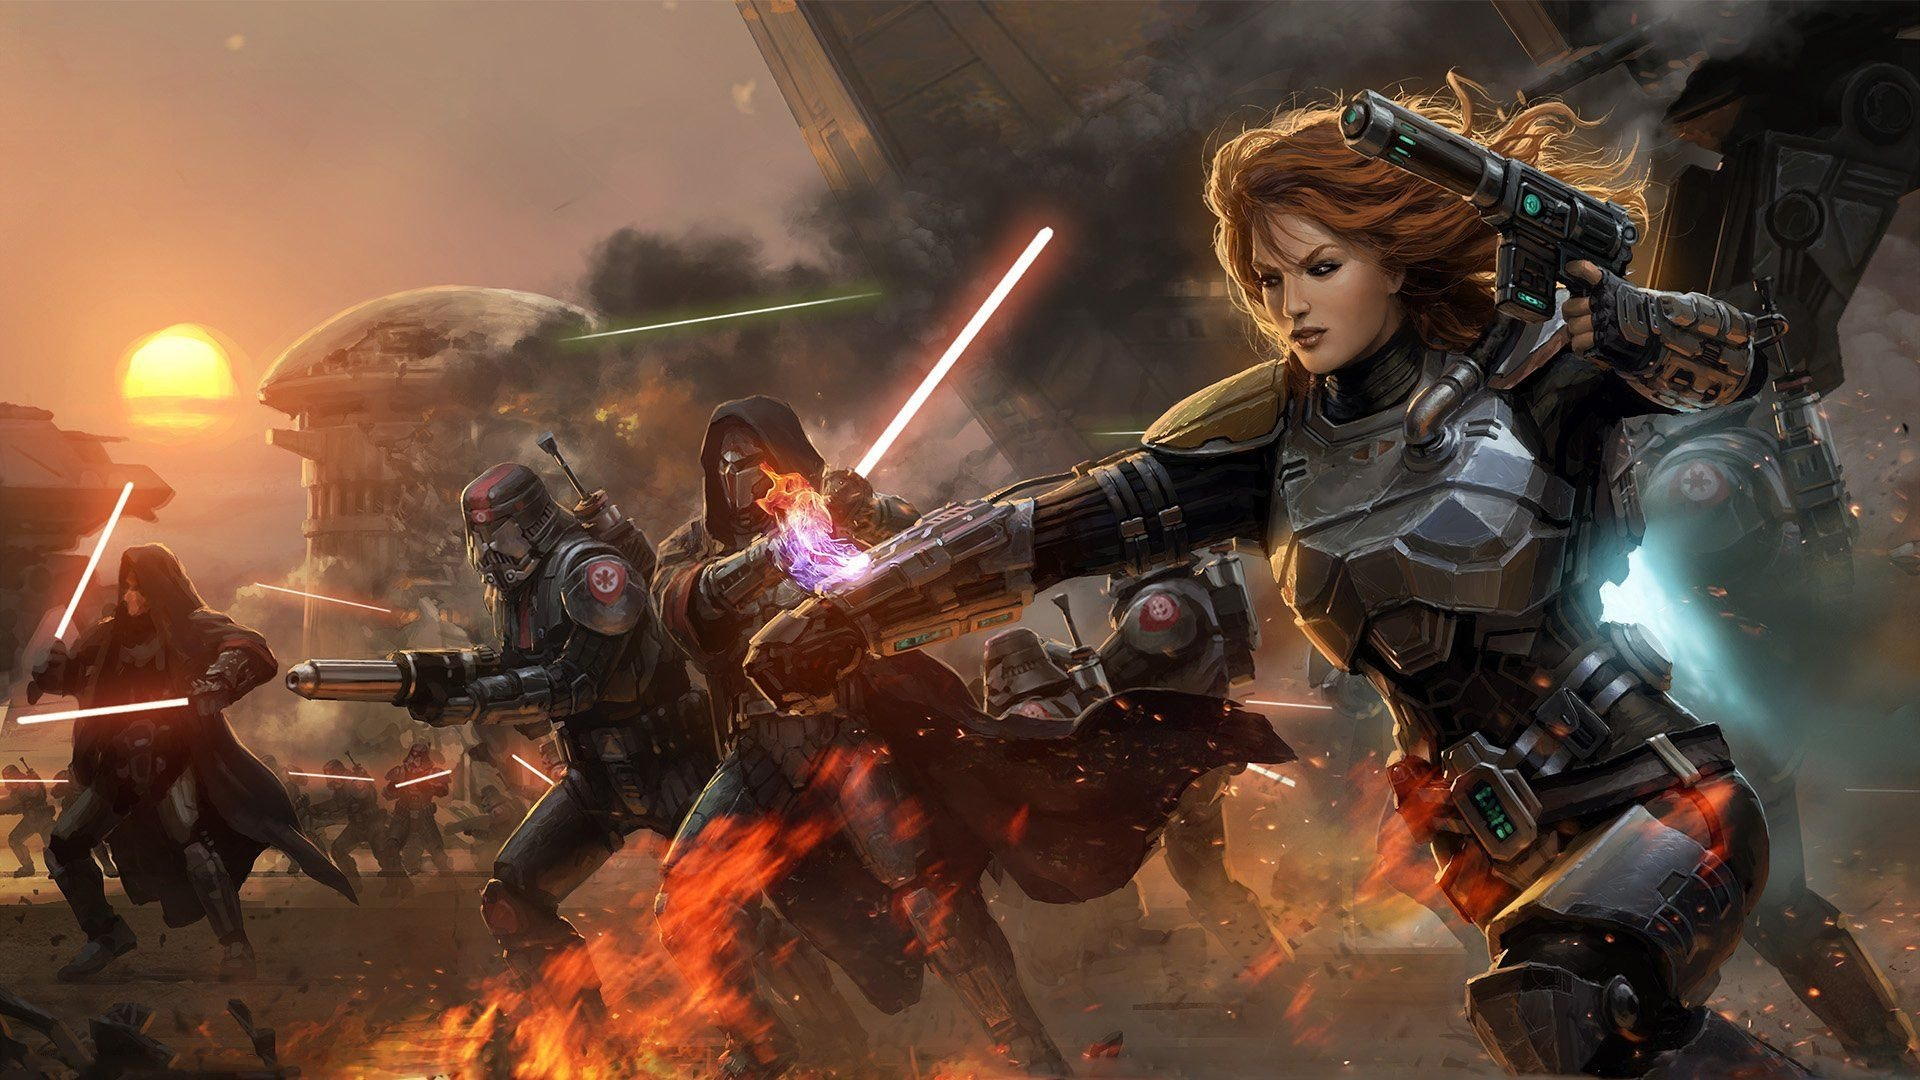 Promotional art for 'Star Wars: The Old Republic' an MMO sequel to 'Knights of the Old Republic'.